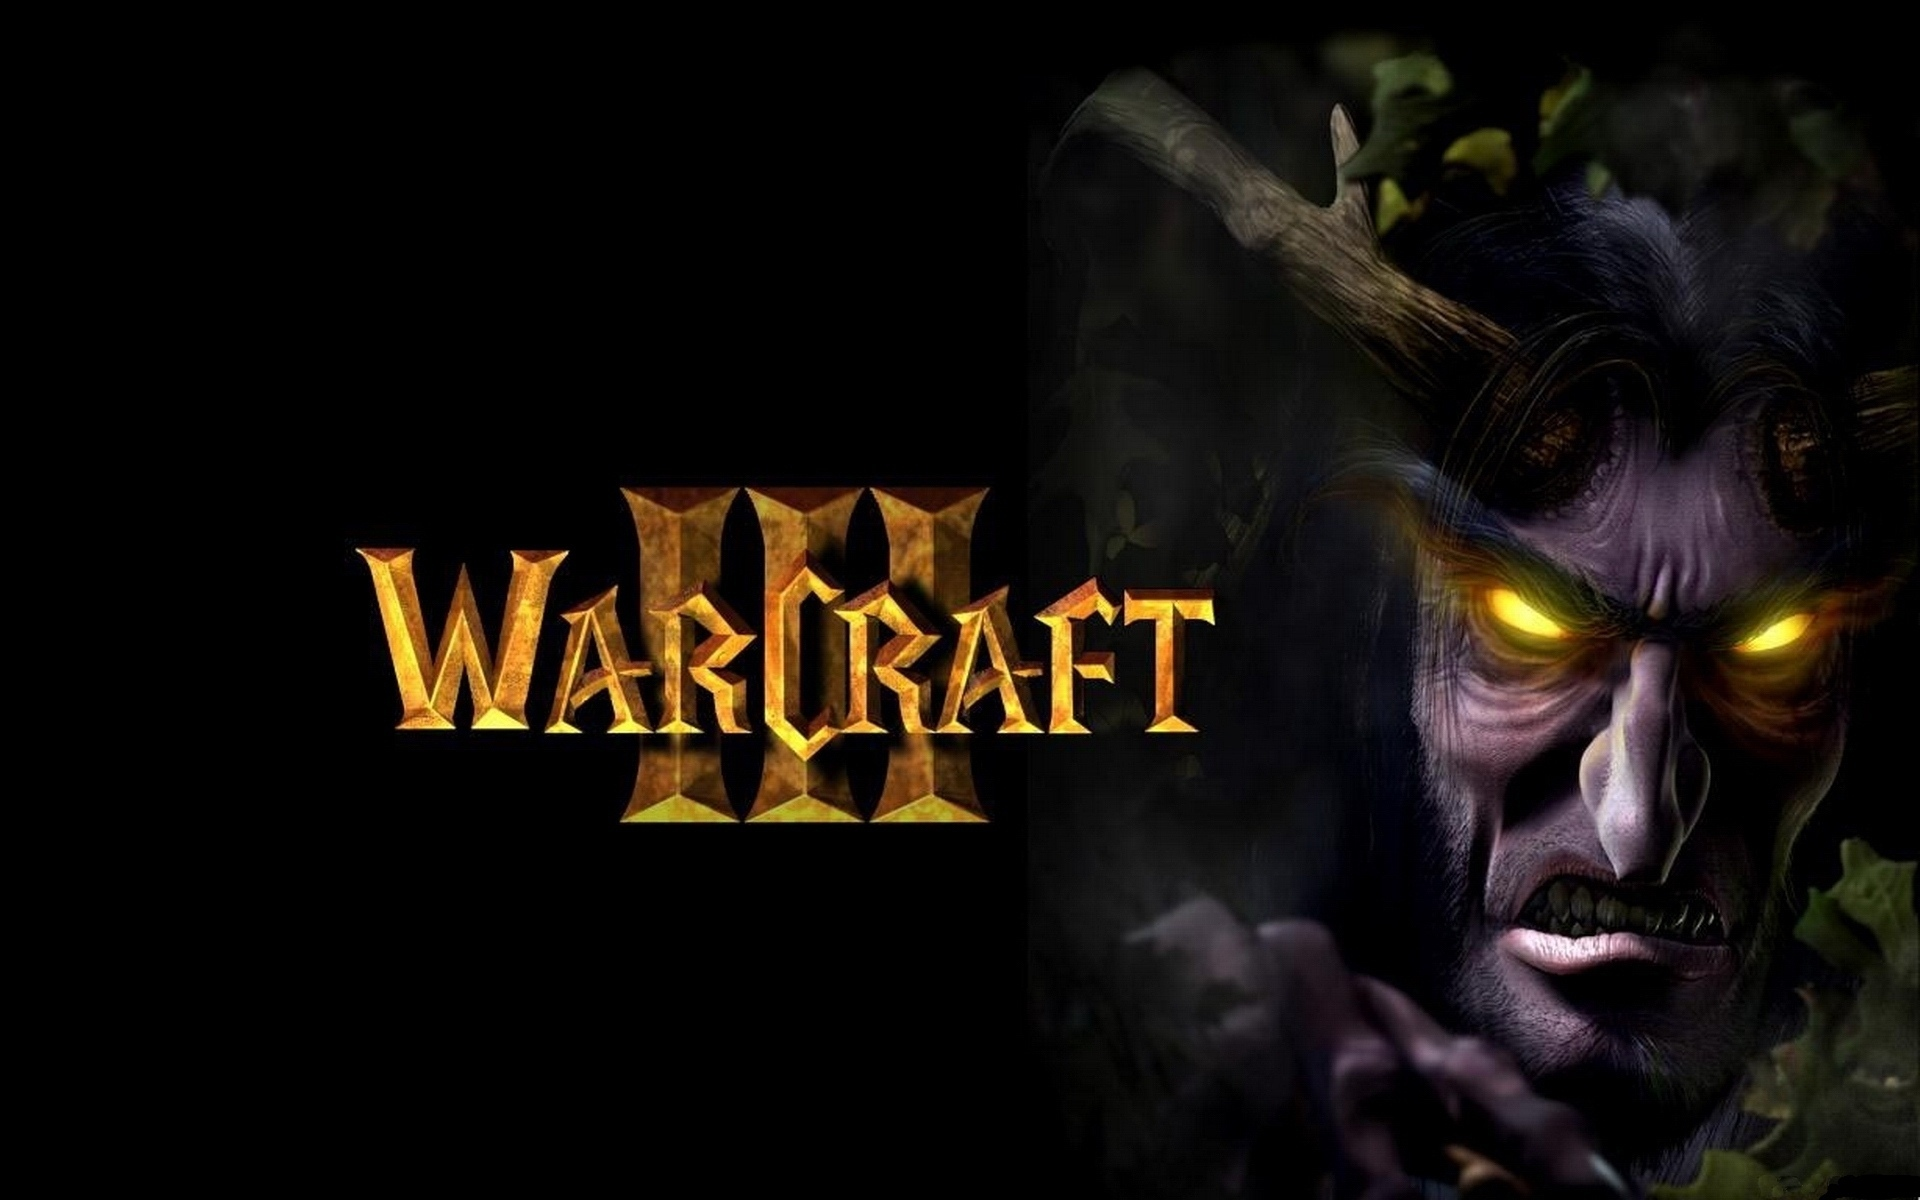 World of warcraft po rn exploited toons